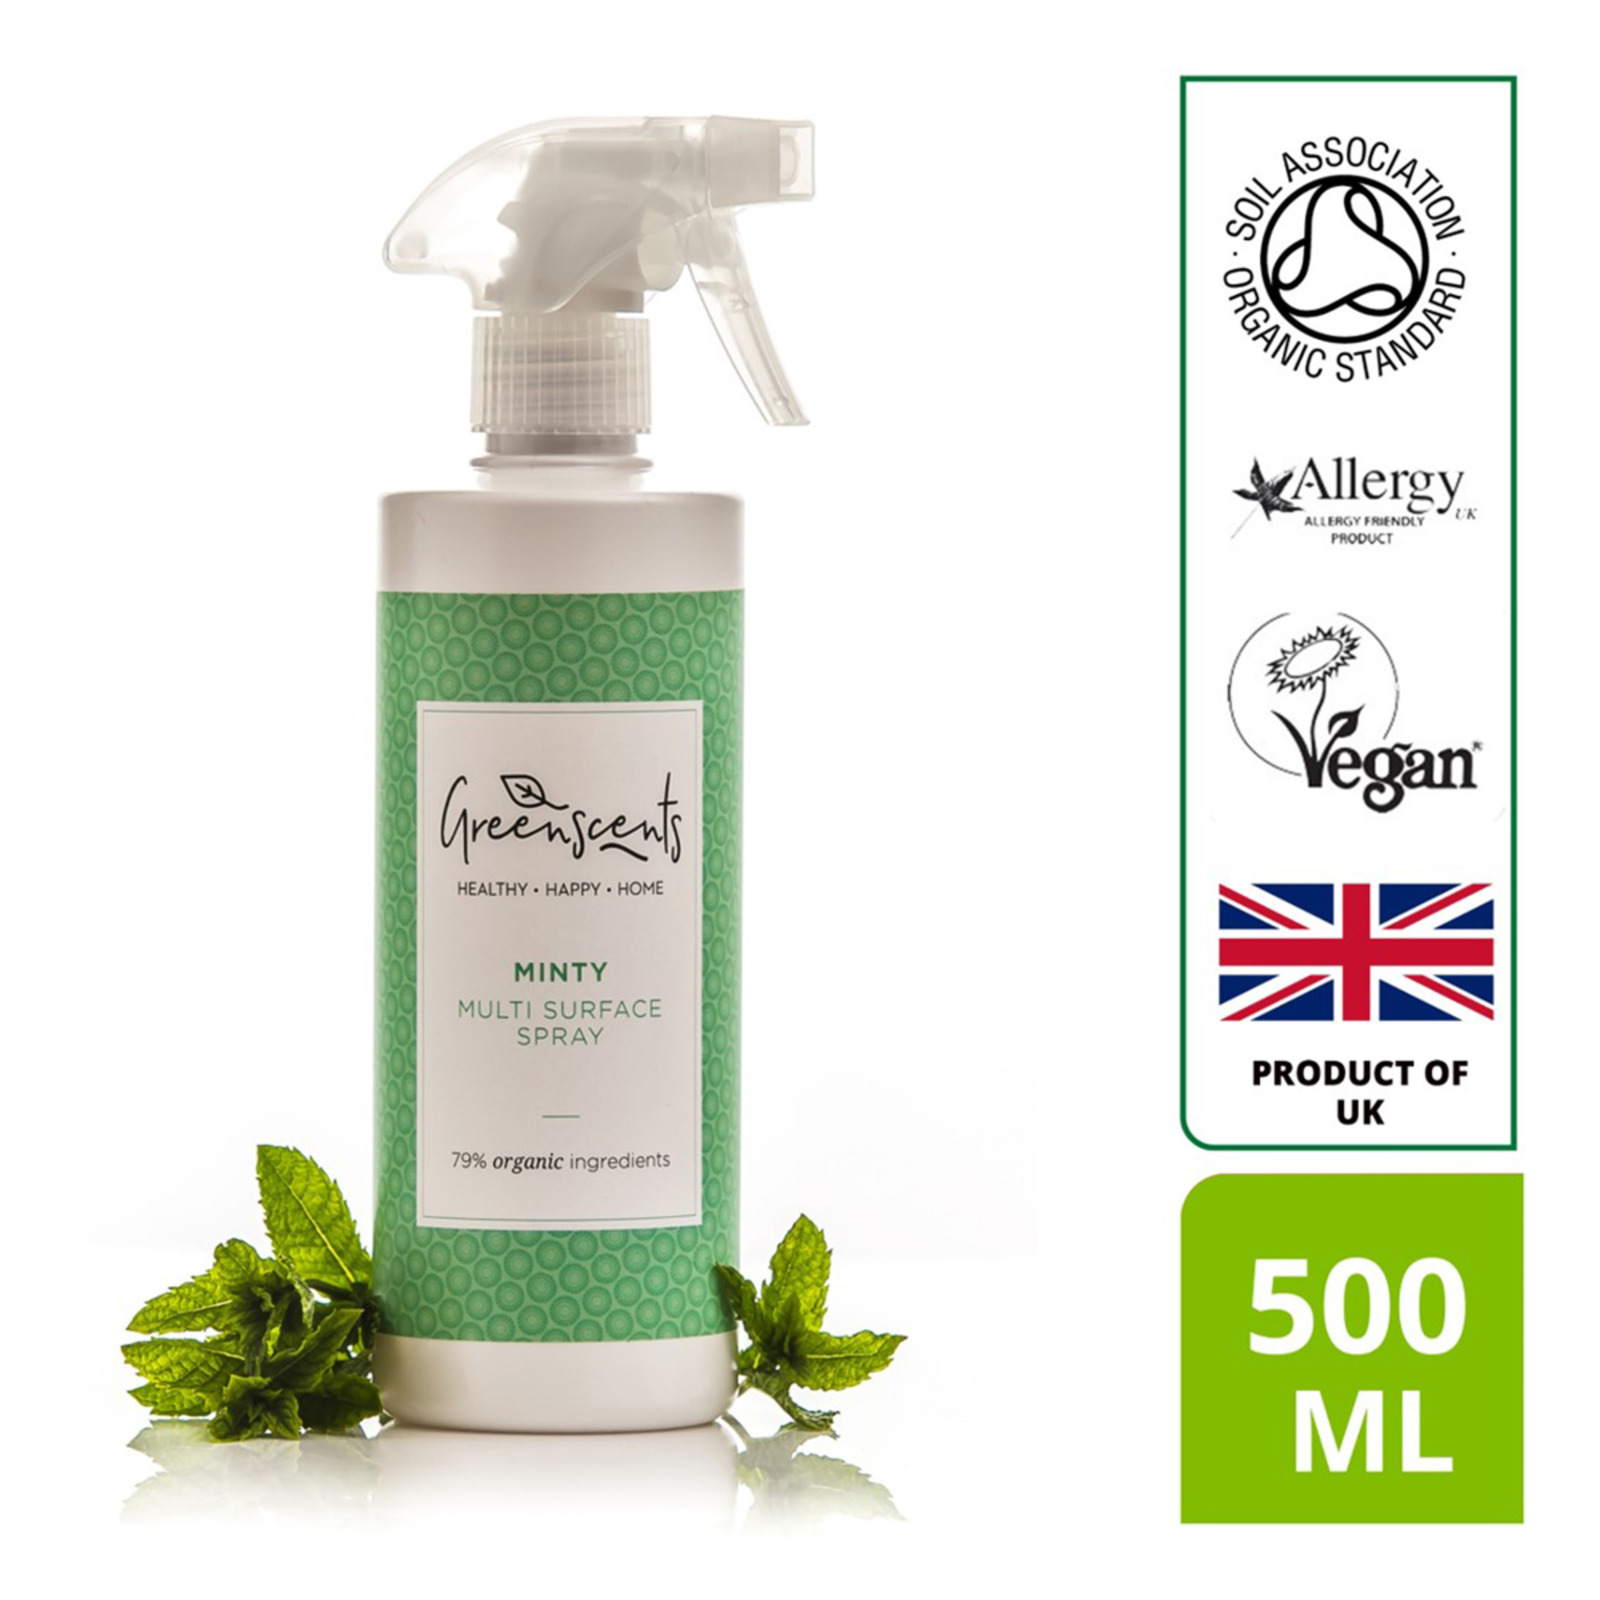 Greenscent Organic Multi-Surface Sprayer - Mint